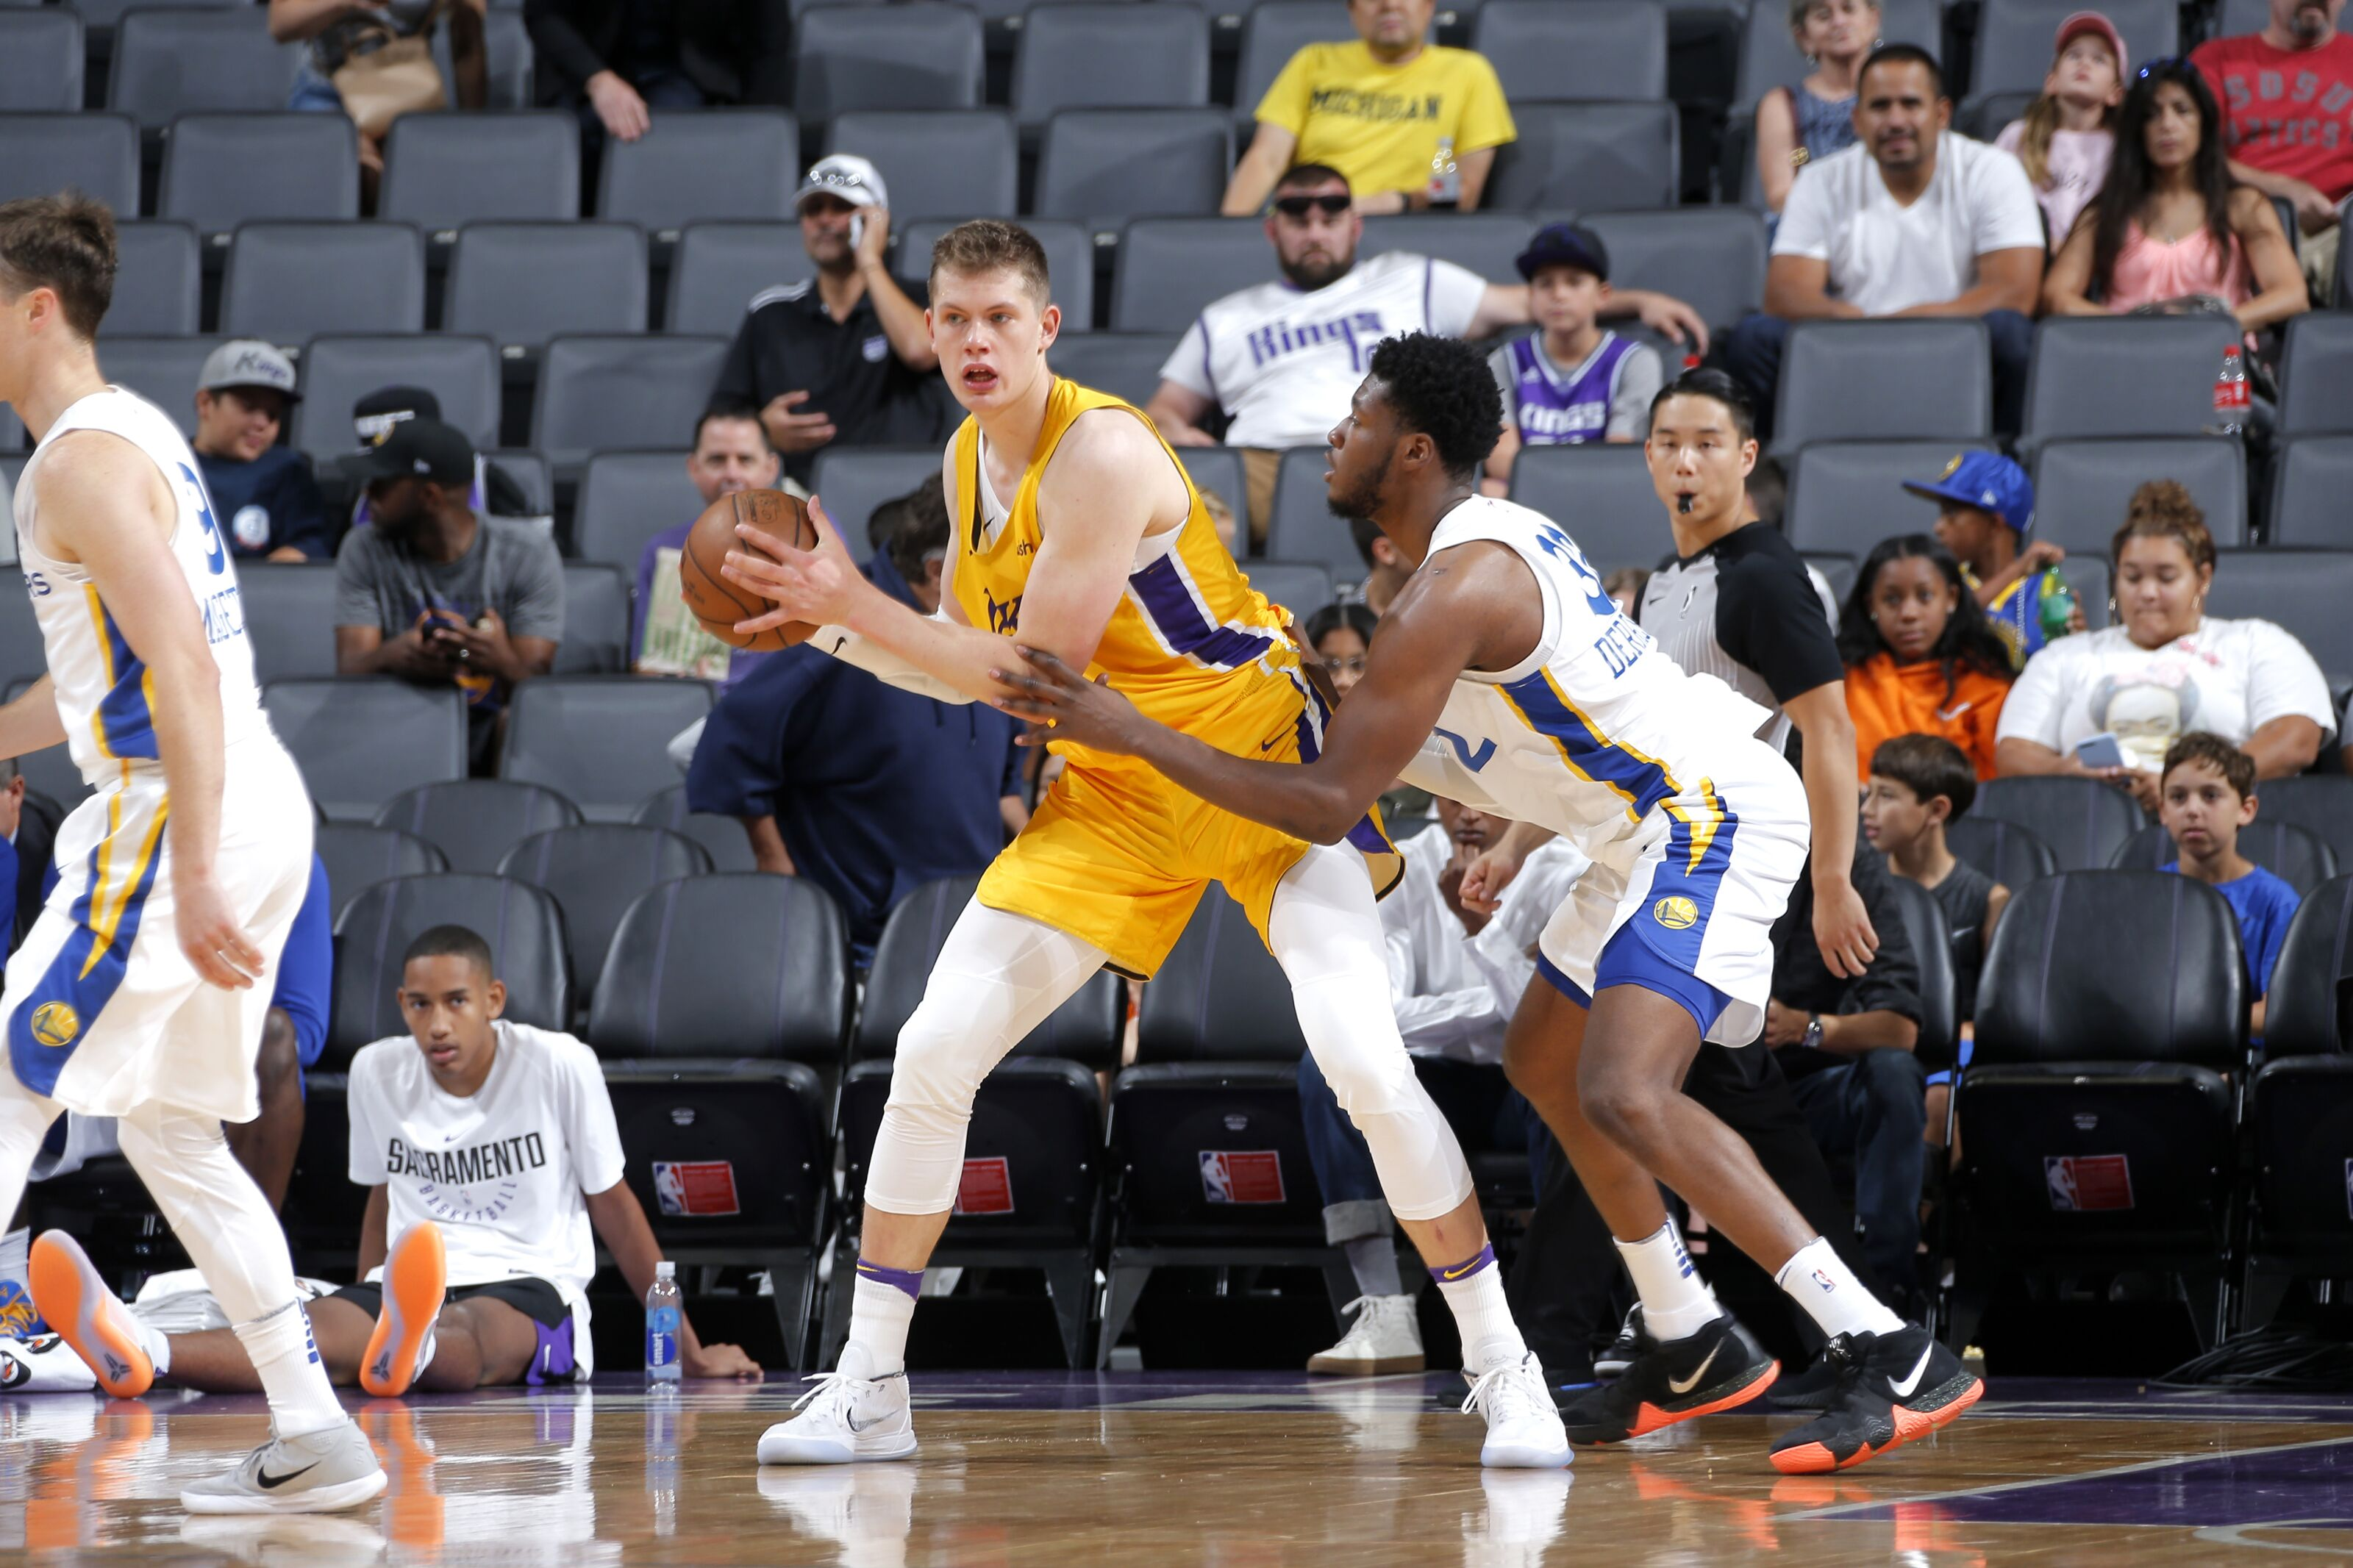 c195fd3fe55e Los Angeles Lakers rookies currently have undefined roles